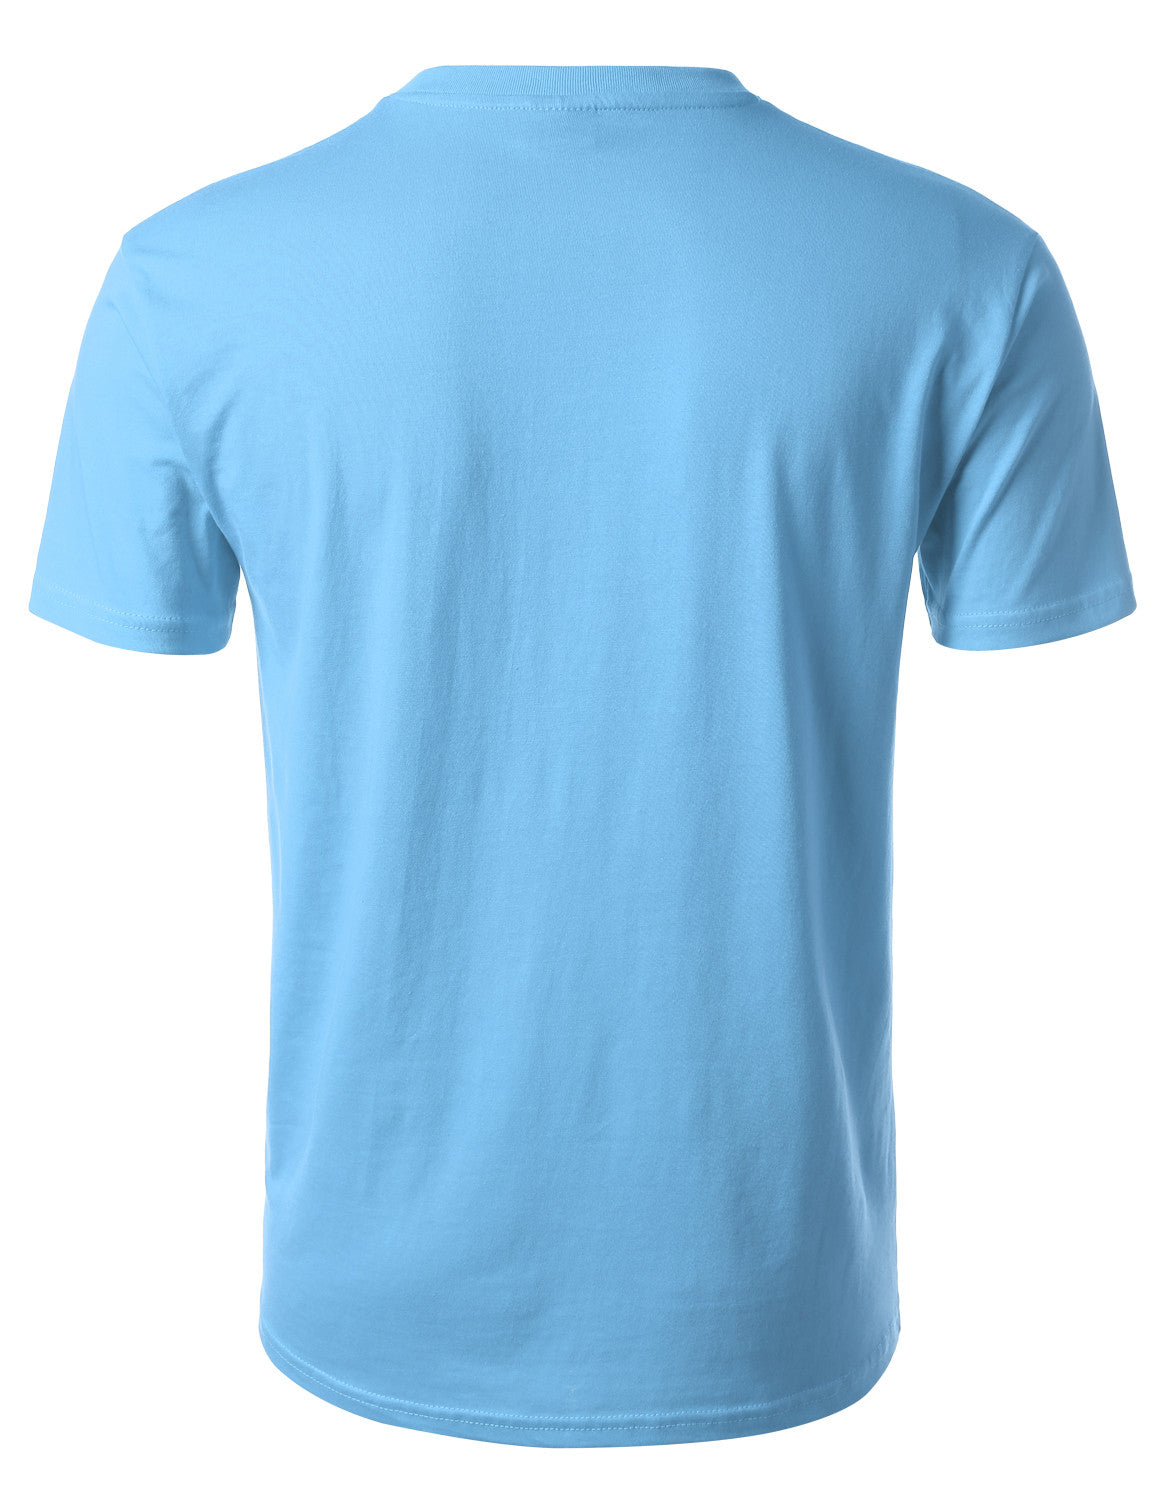 POWDBLUE Basic Cotton Jersey Crewneck T-Shirt - URBANCREWS